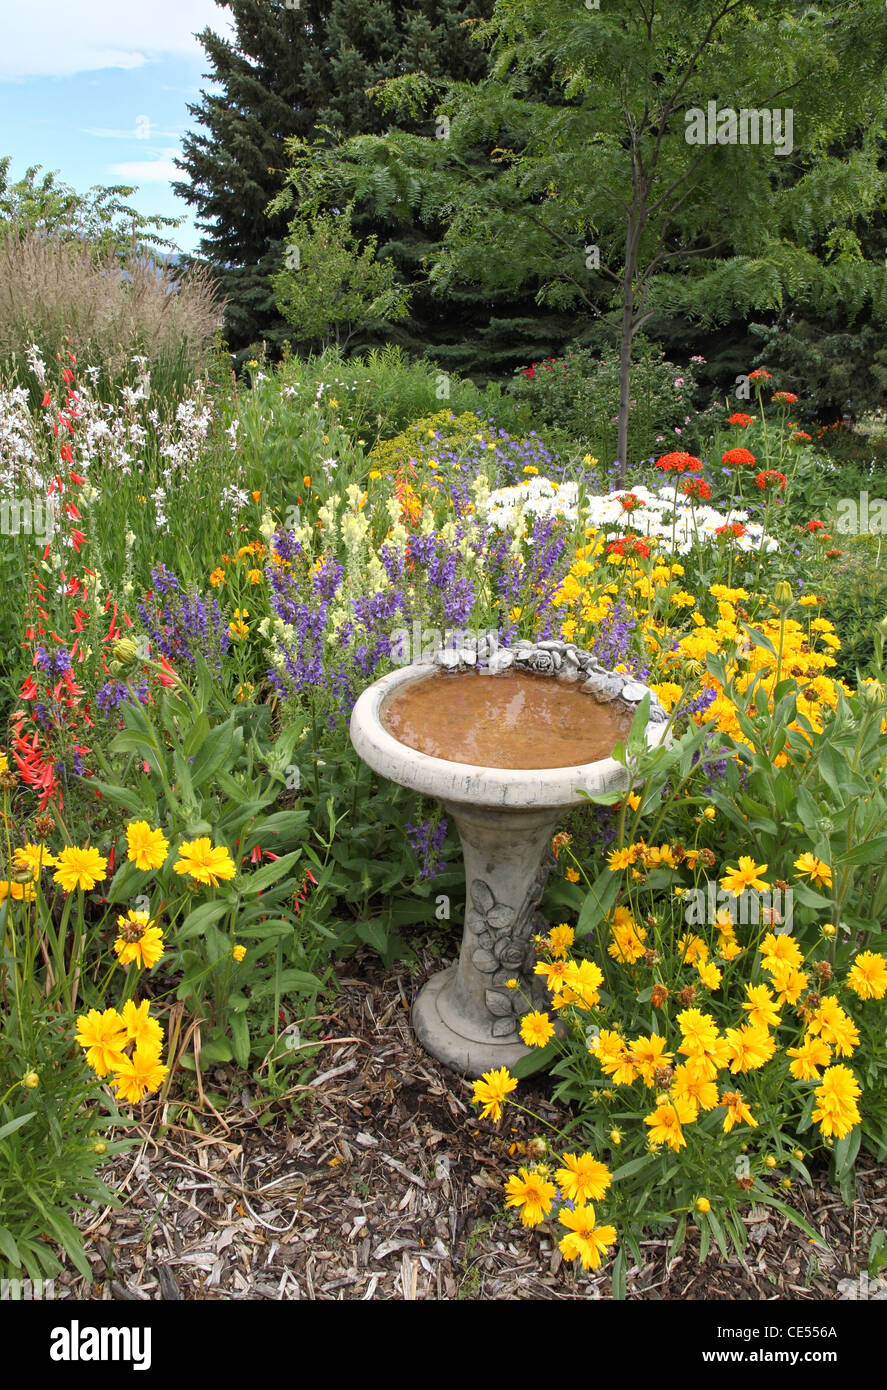 Attrayant Beautiful Flower Garden With Colorful Flowers And A Bird Bath